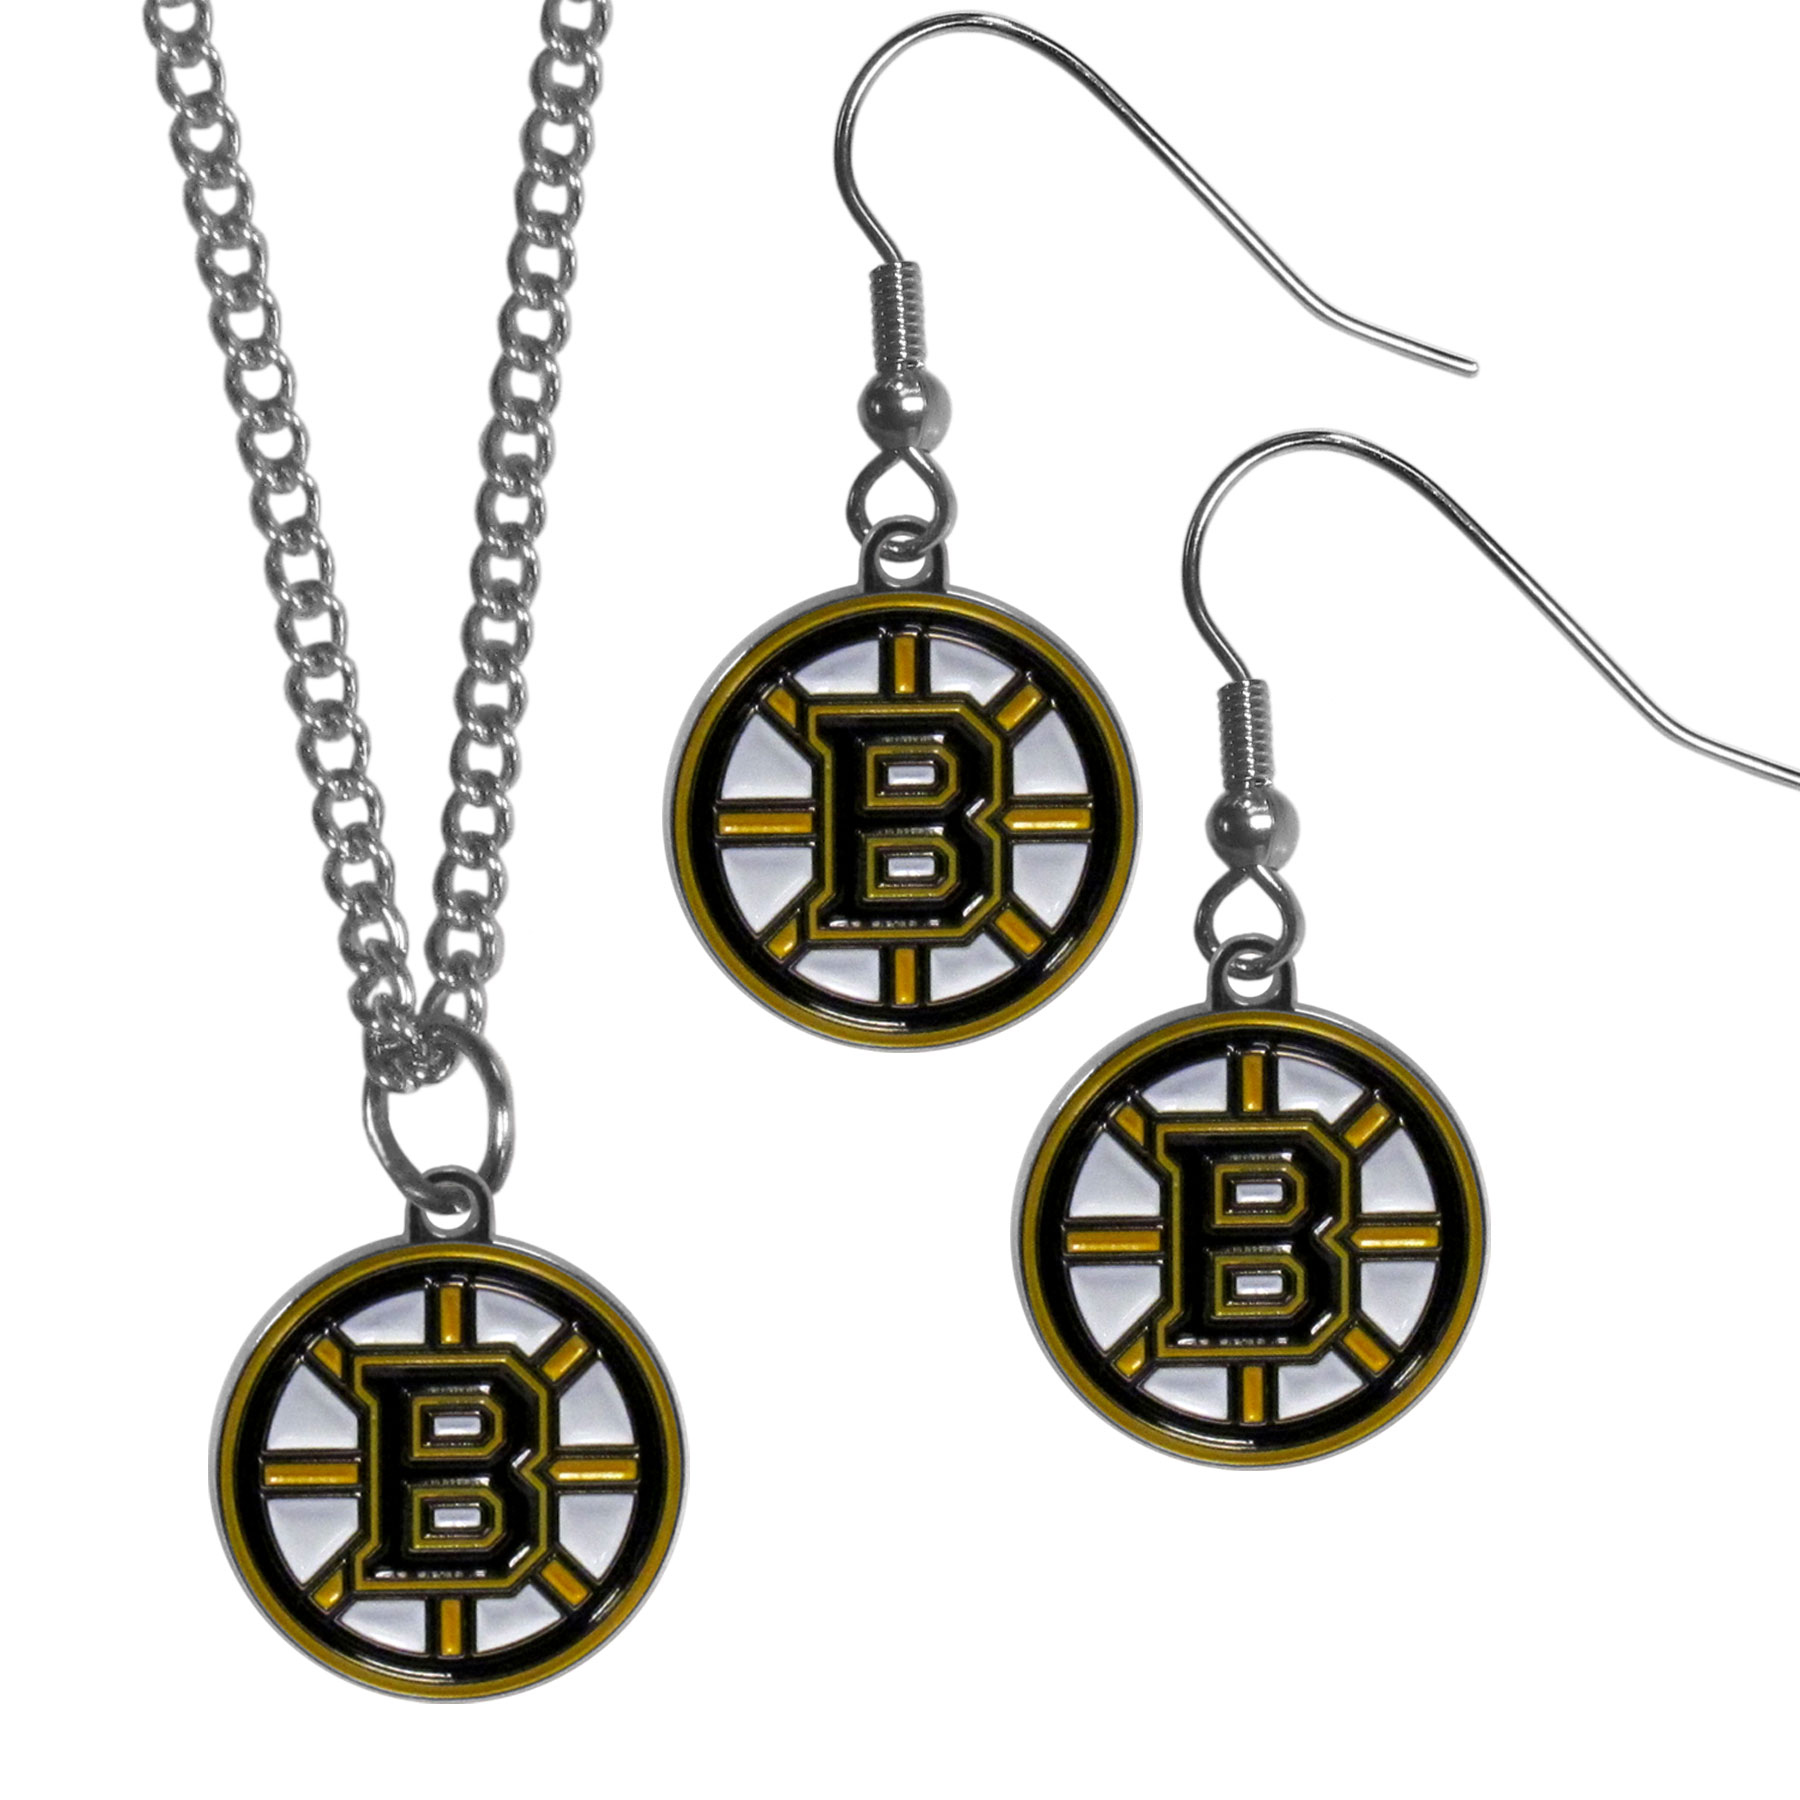 Boston Bruins® Dangle Earrings and Chain Necklace Set - This classic jewelry set contains are most popular Boston Bruins® dangle earrings and 22 inch chain necklace. The trendy, dangle earrings are lightweight and feature a fully cast metal team charm with enameled team colors. The matching necklace completes this fashion forward combo and is a spirited set that is perfect for game day but nice enough for everyday.